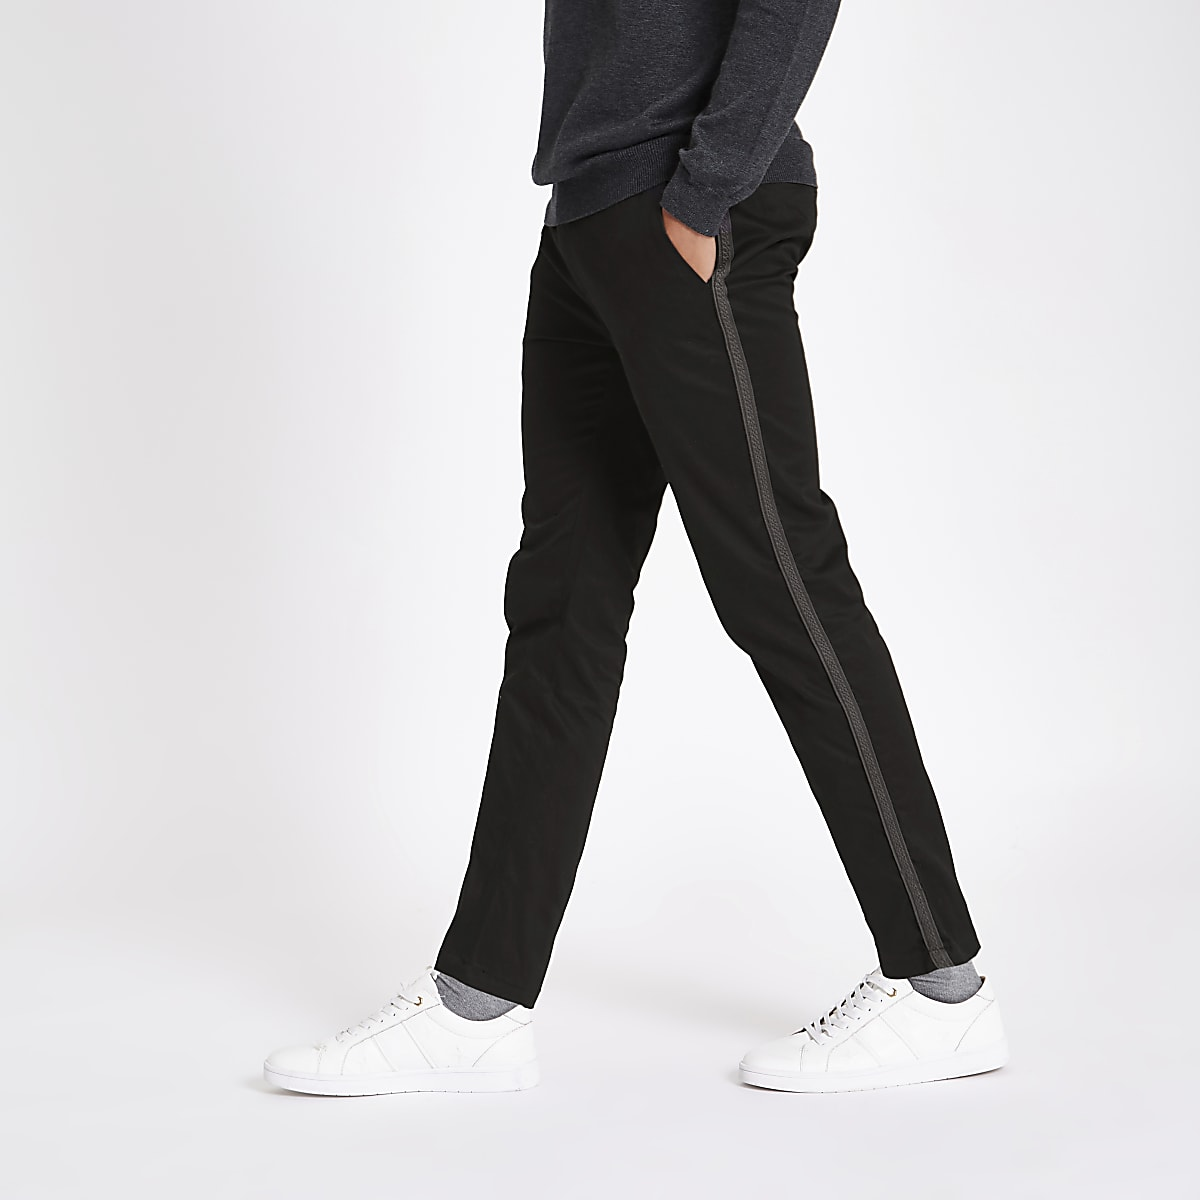 Black taped side skinny fit pants